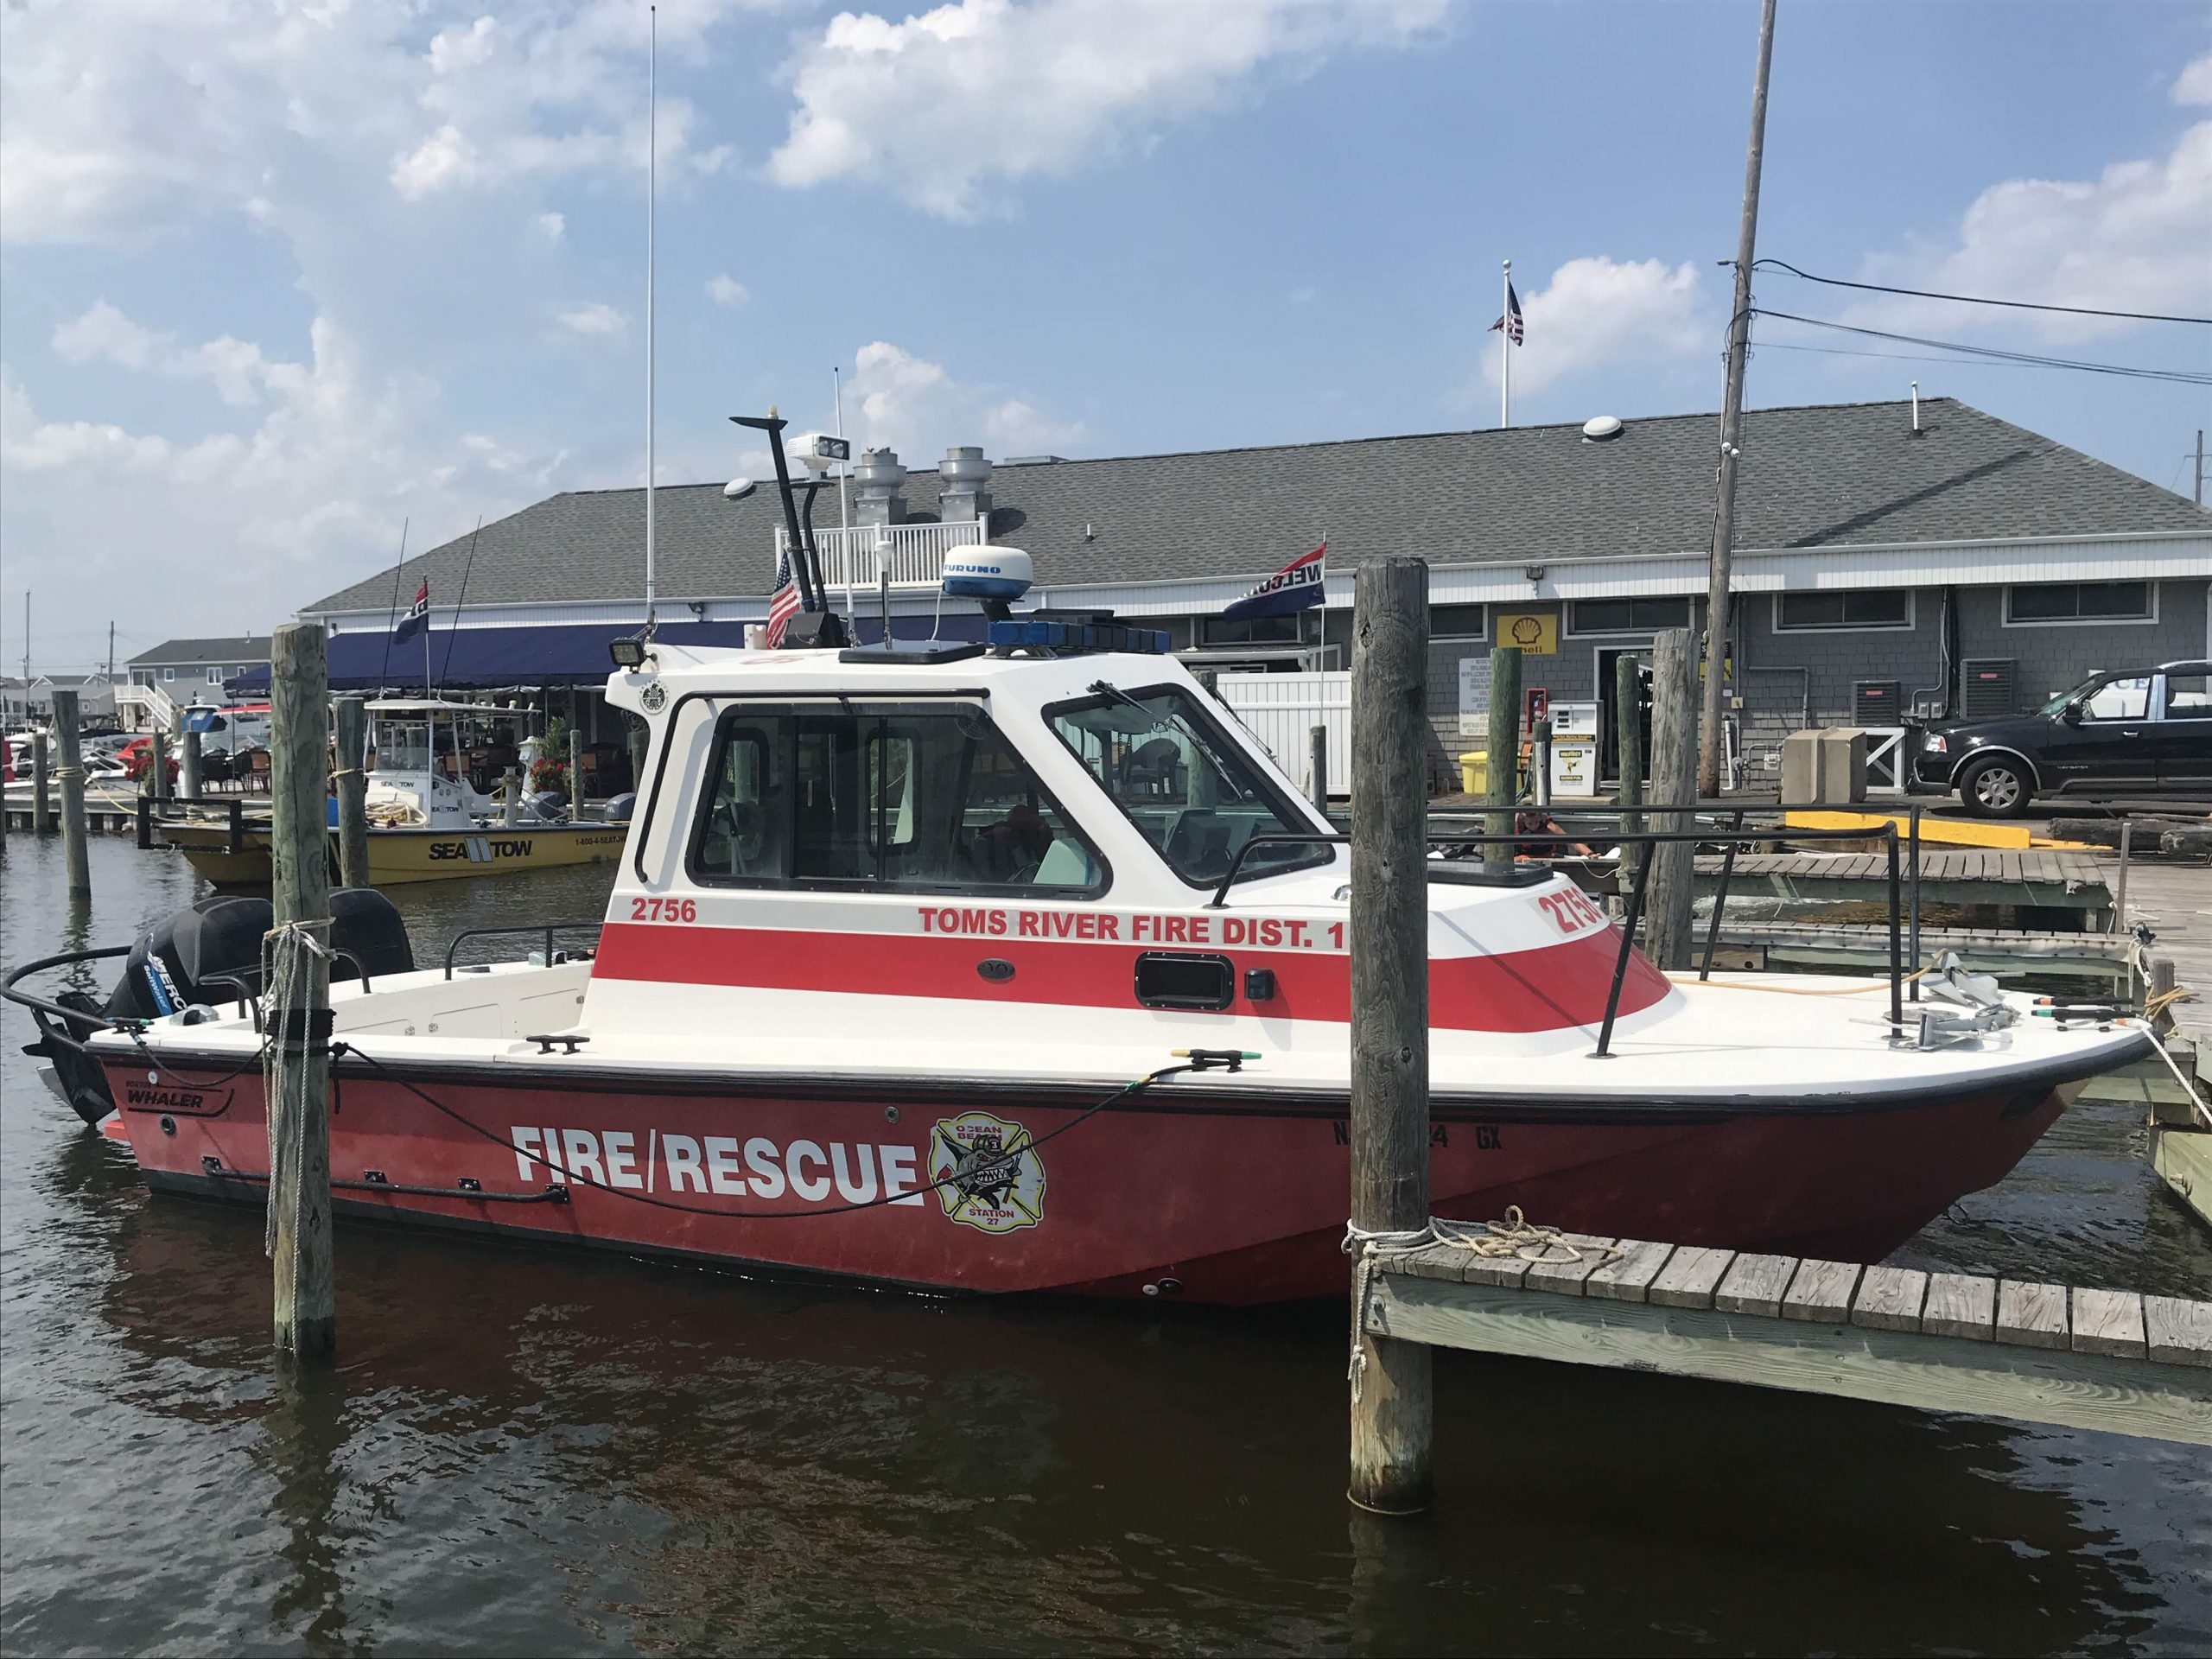 A Toms River fire/rescue boat at Ocean Beach Marina. (Photo: Daniel Nee)